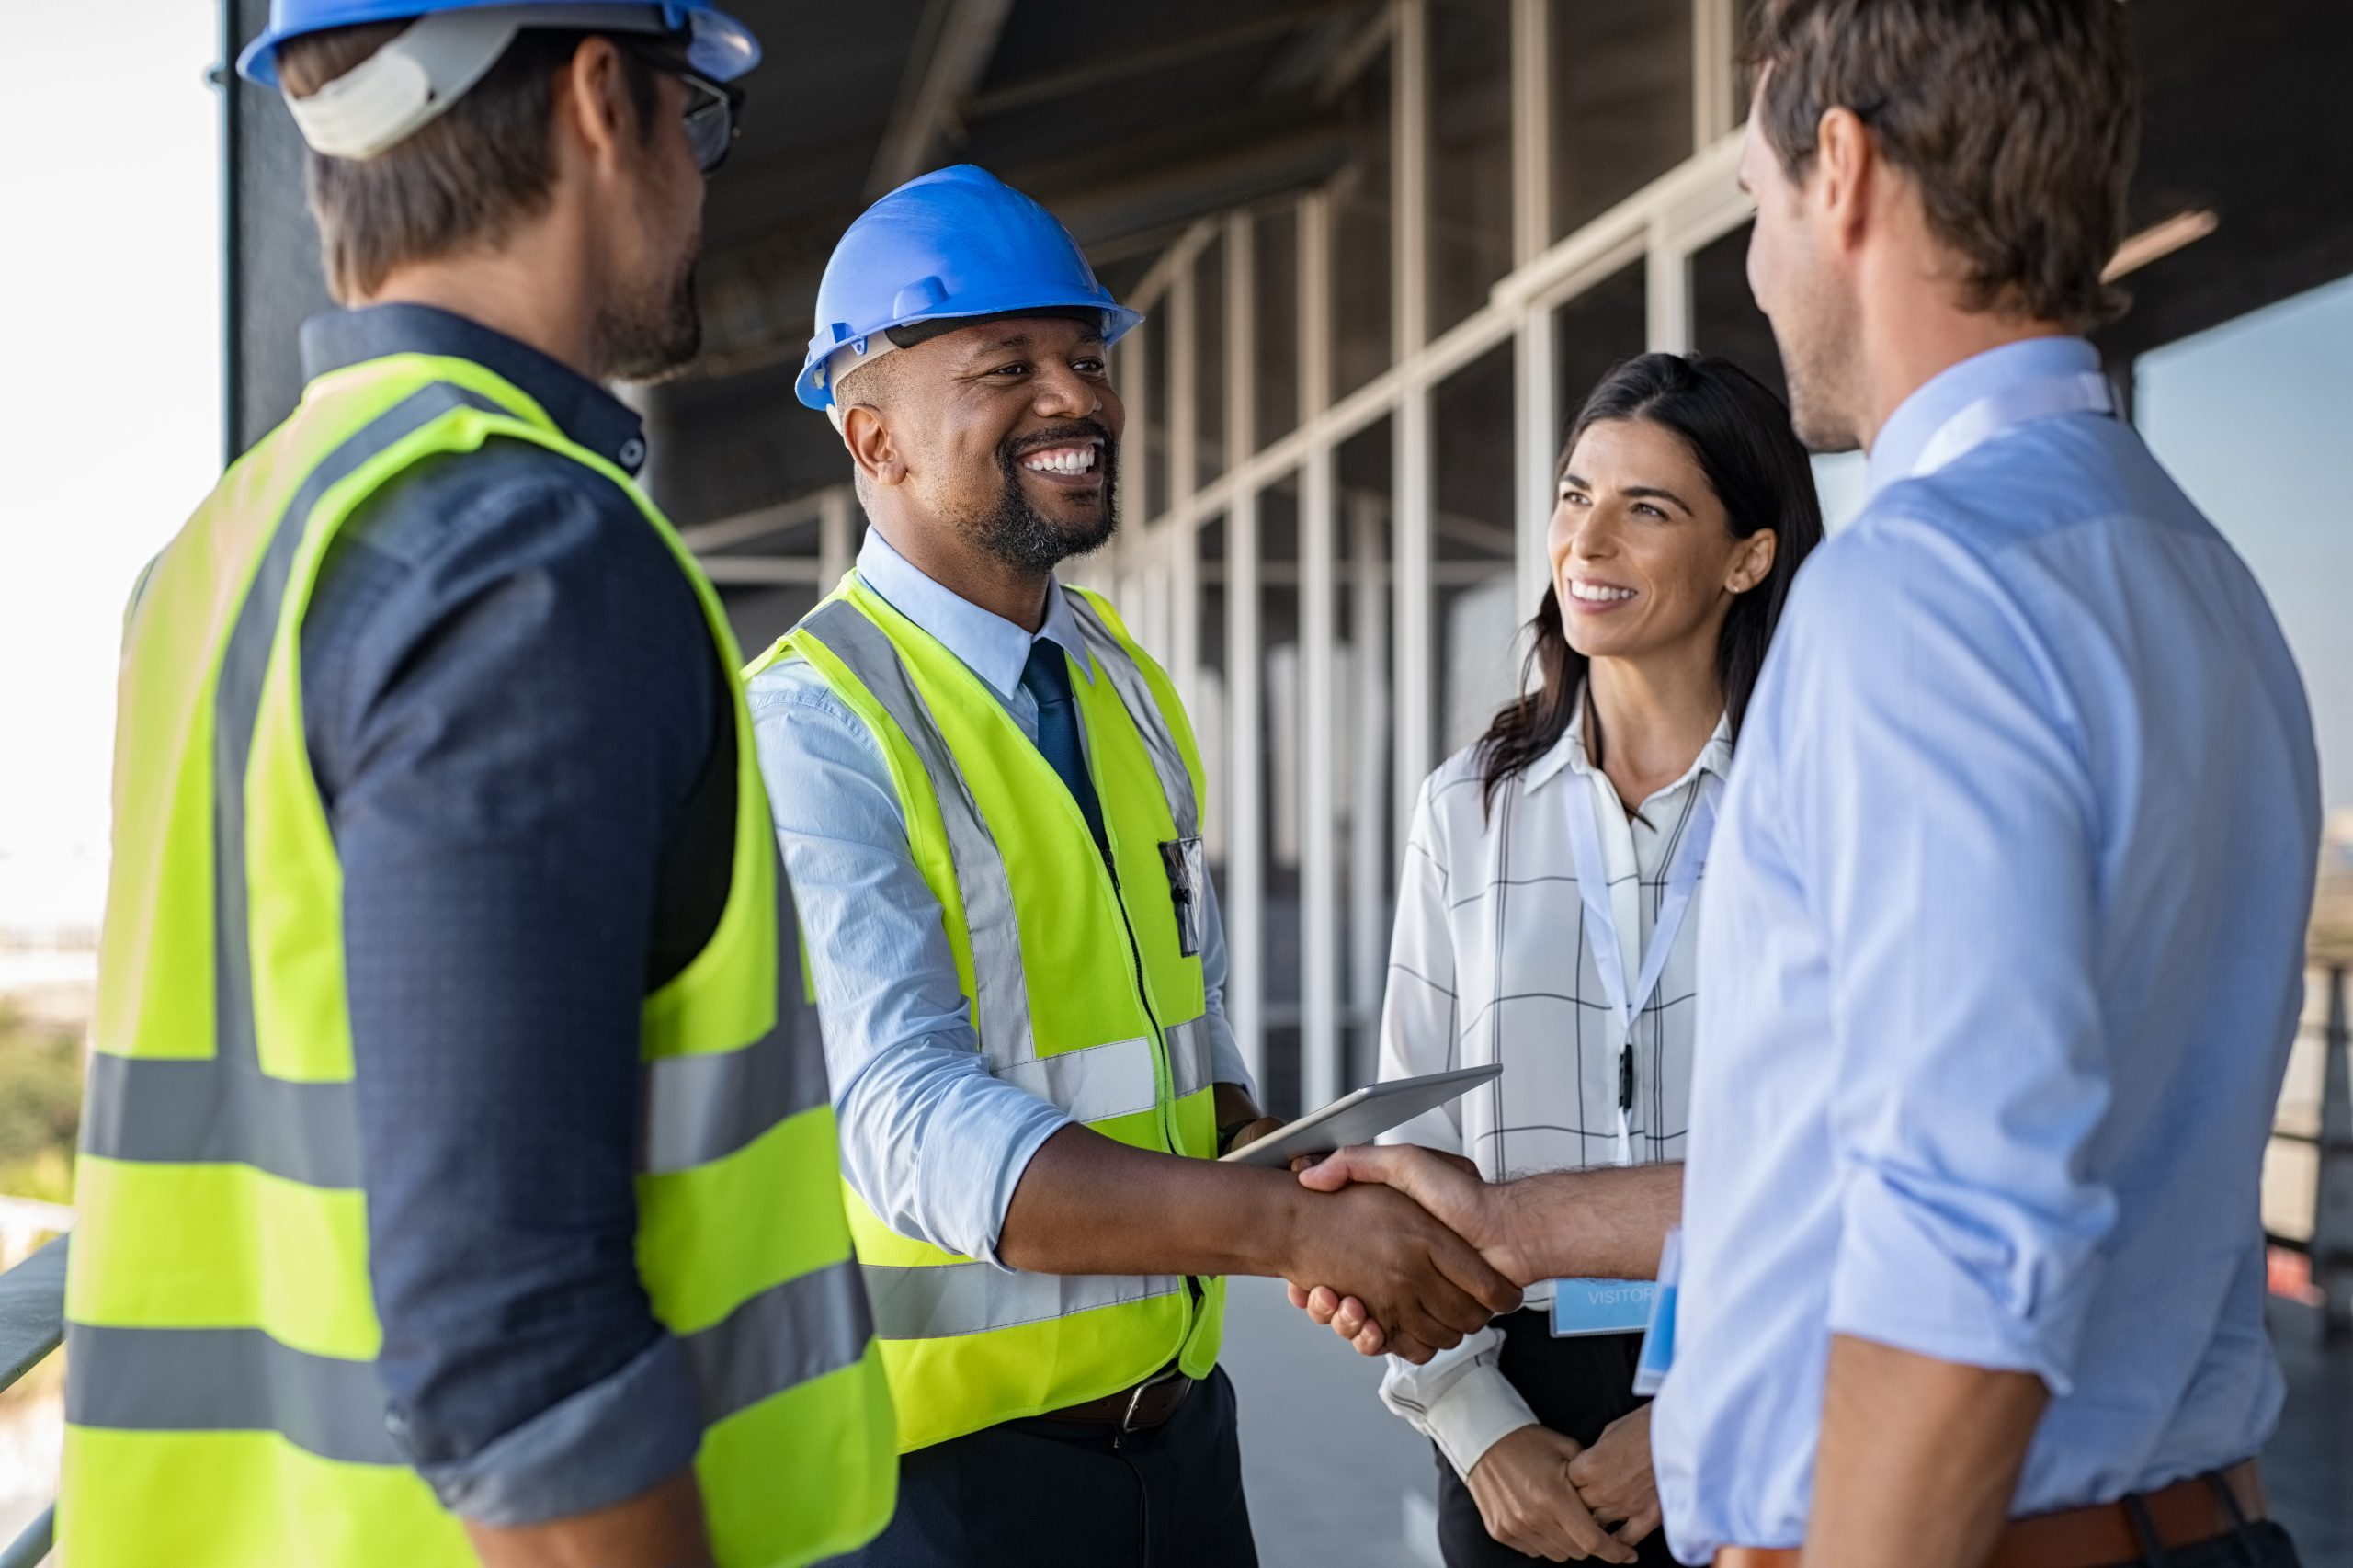 Engineer and businessman shake hands at construction site